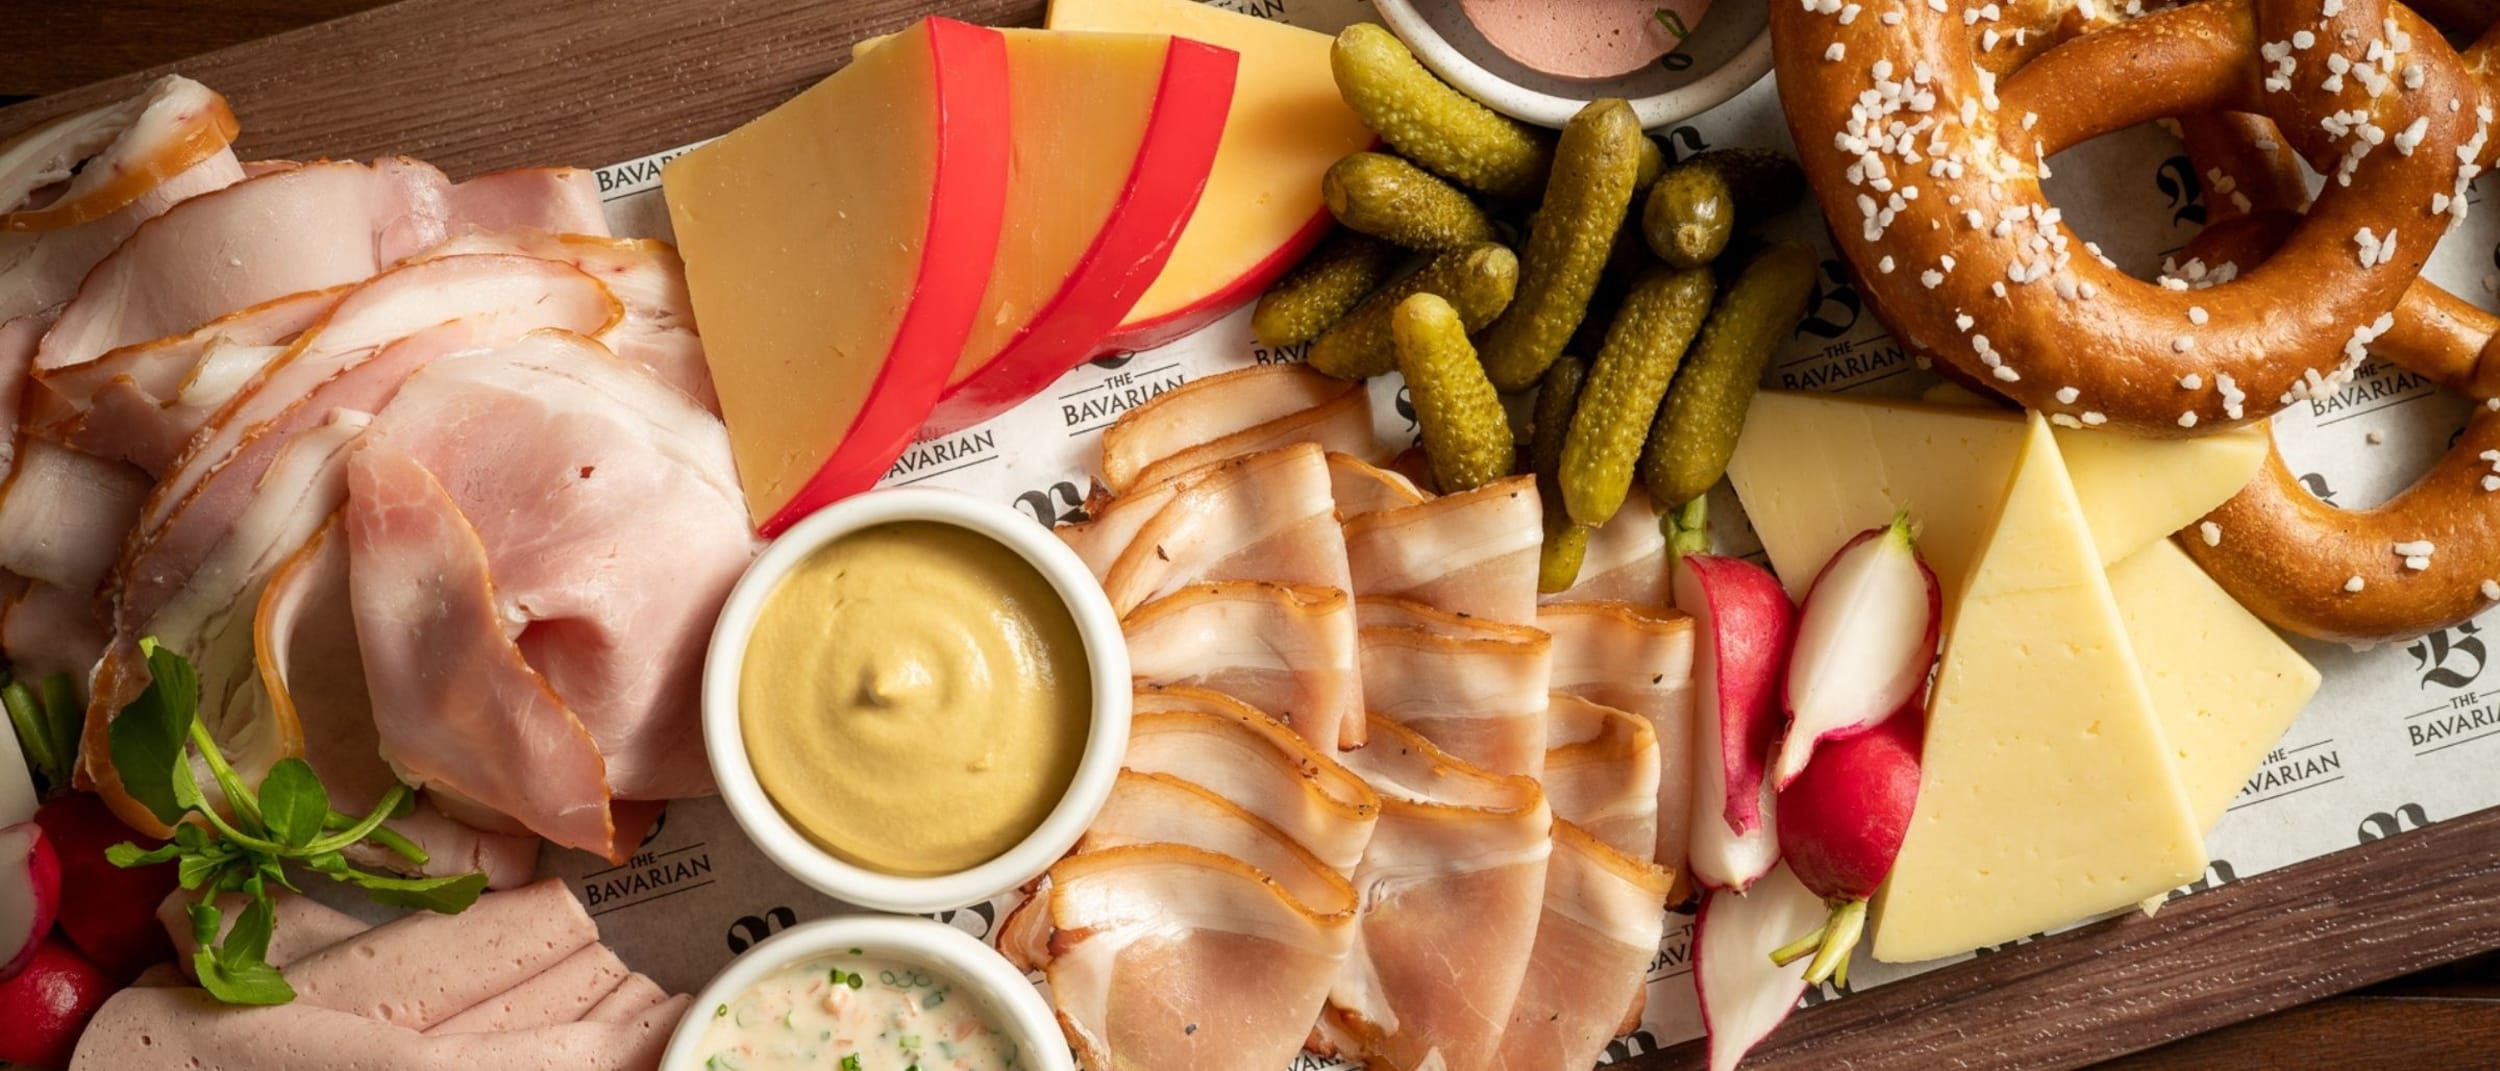 The Bavarian: All you can meat & cheese board